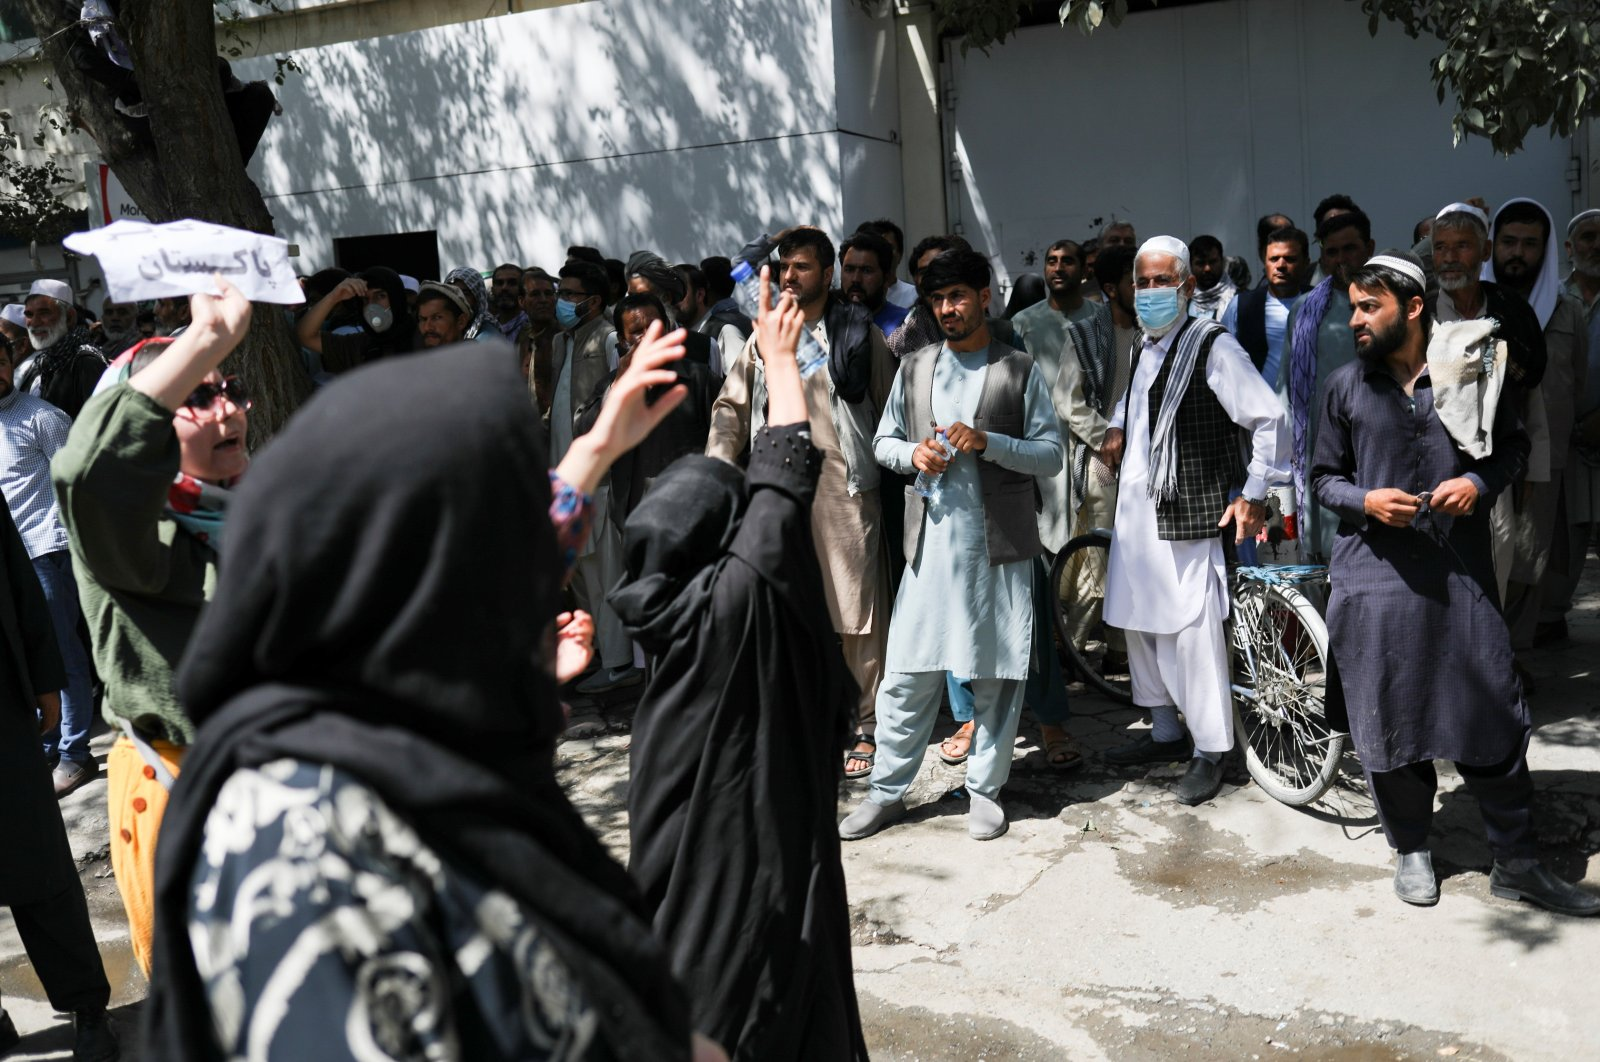 Female Afghan protesters chant toward a crowd of men during the anti-Pakistan protest in Kabul, Afghanistan, Sept. 7, 2021. (West Asia News Agency via Reuters)